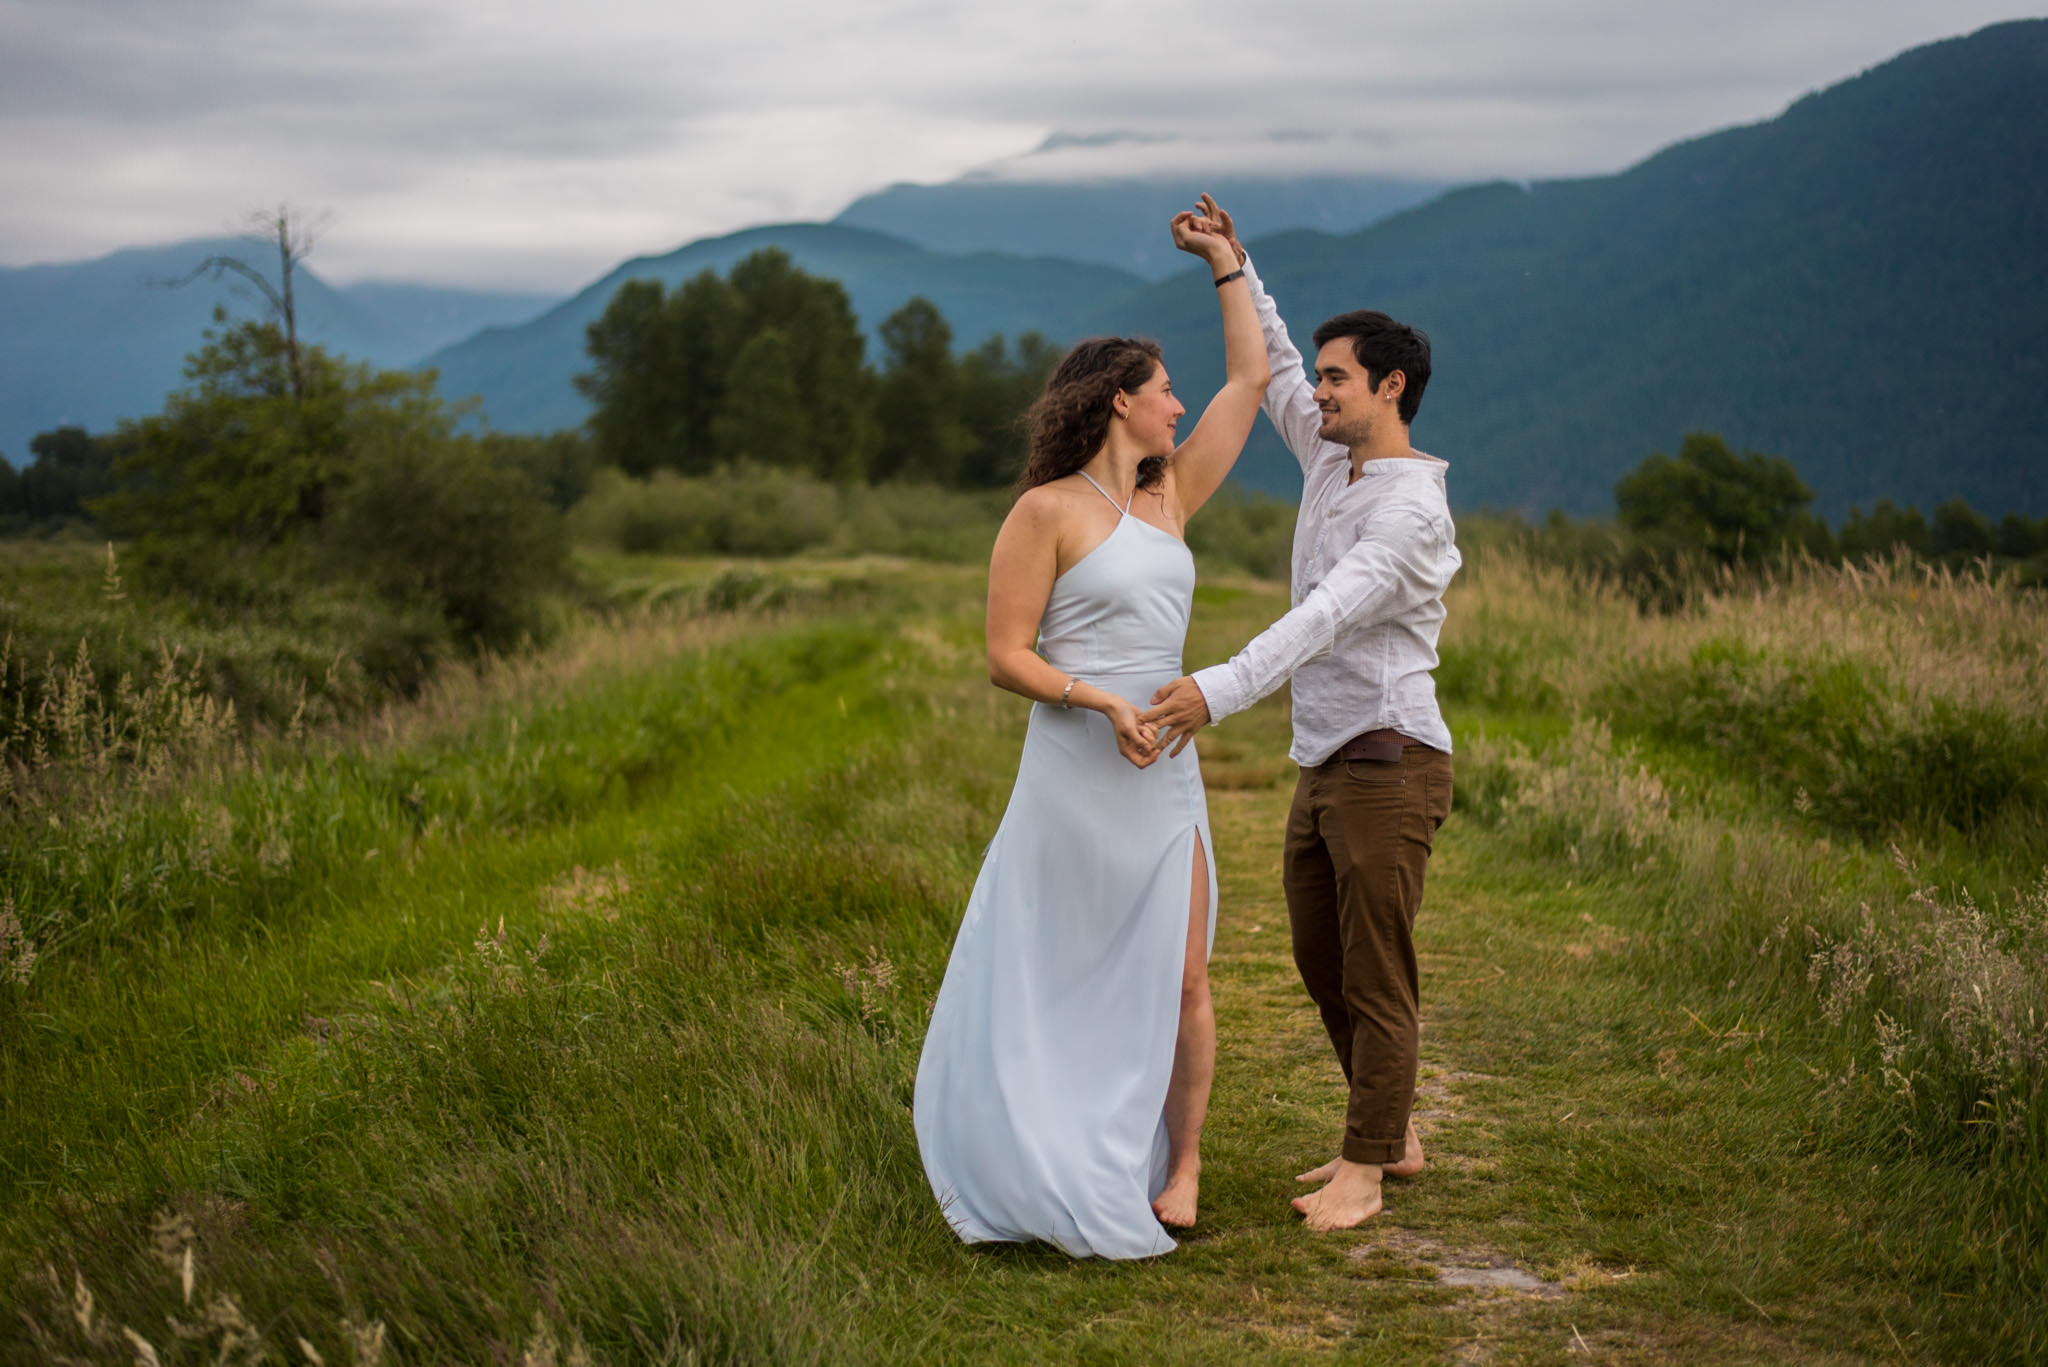 Engagement Session at Pitt Meadows British Columbia